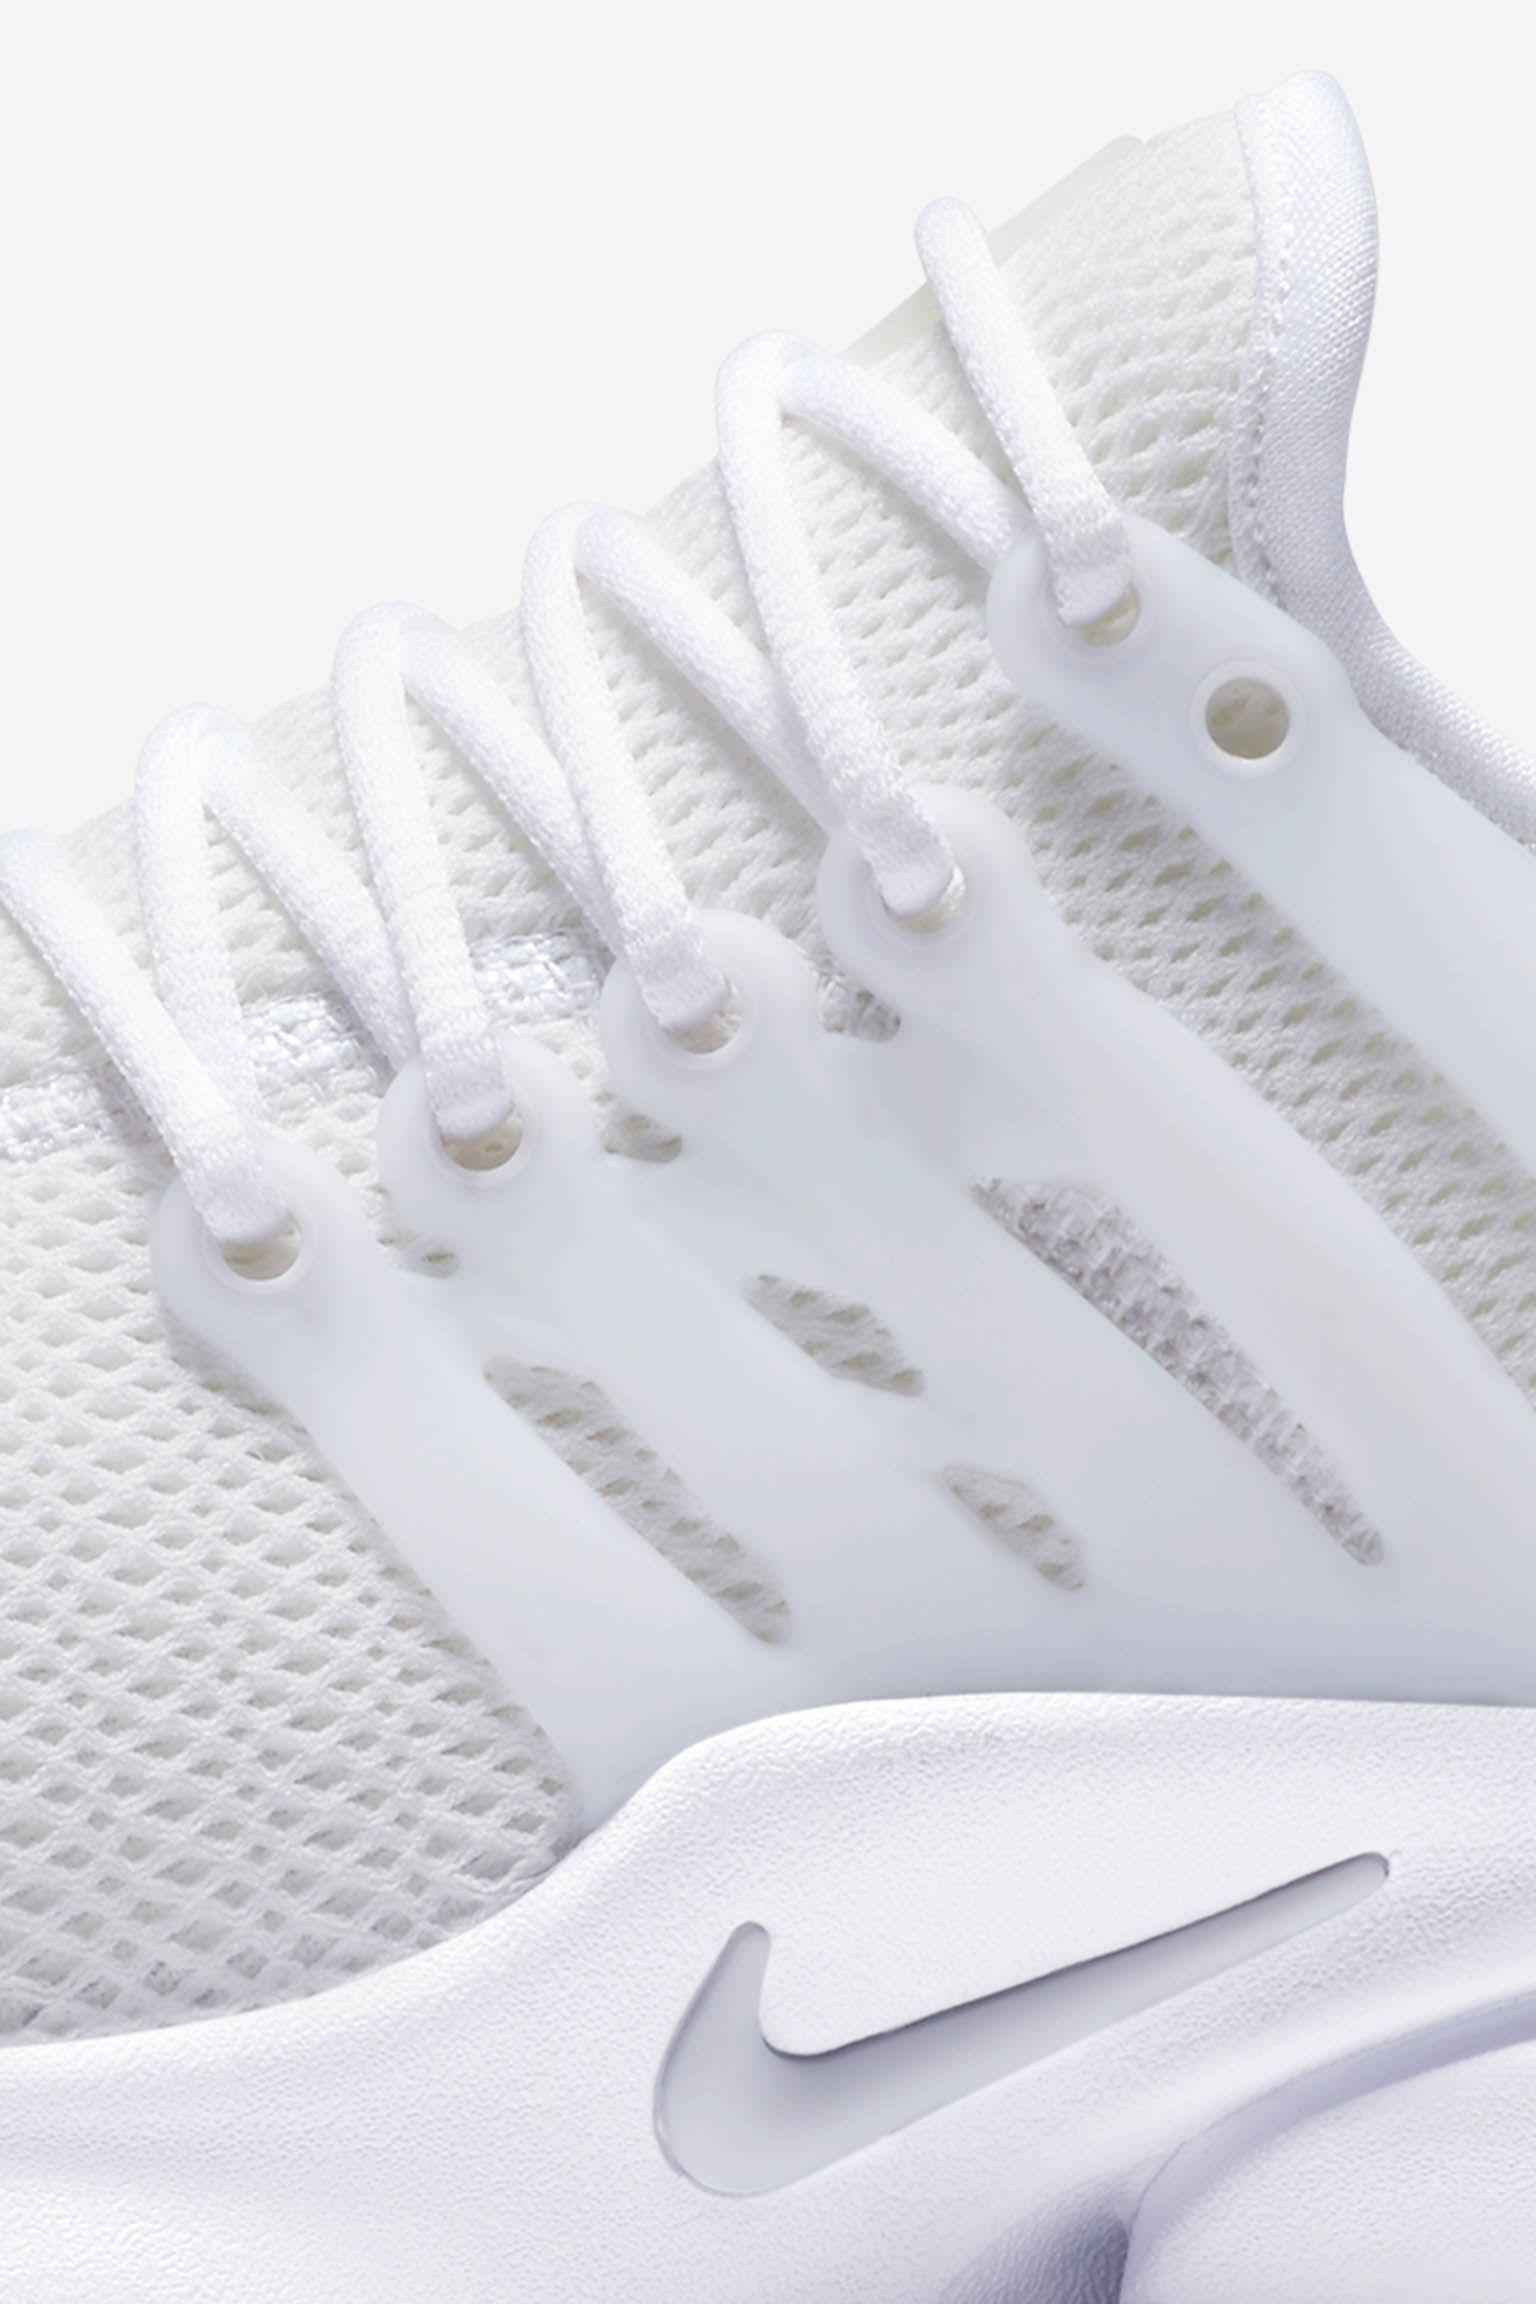 Women's Nike Air Presto 'White & Pure Platinum' Release Date